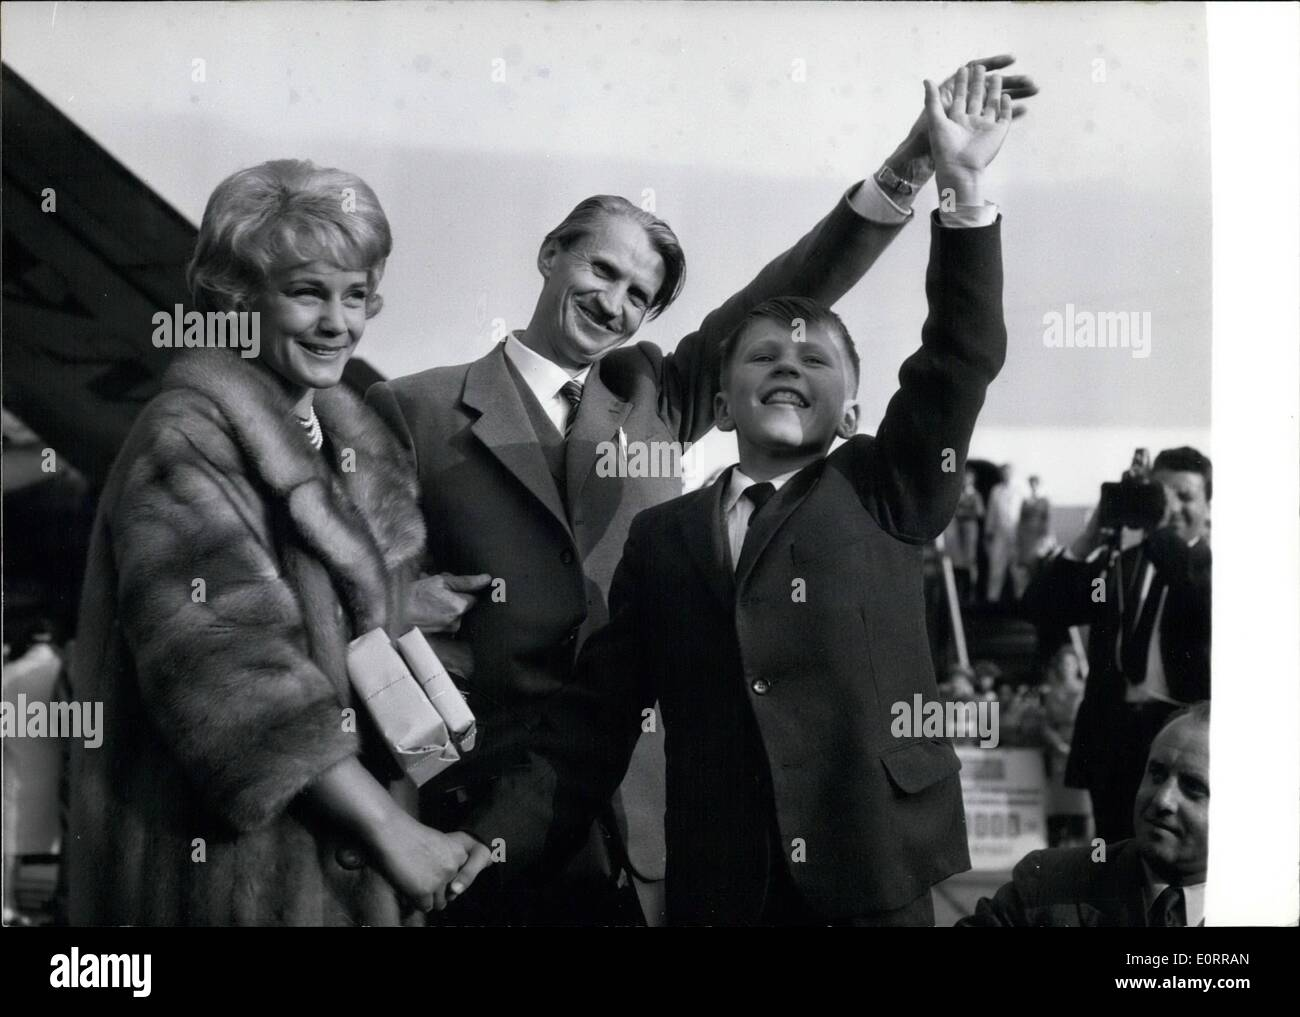 May 05, 1960 - The 1,000,000th emigrant left Munich The Intergovernmental Commitee for European Migration discharged today, May - Stock Image